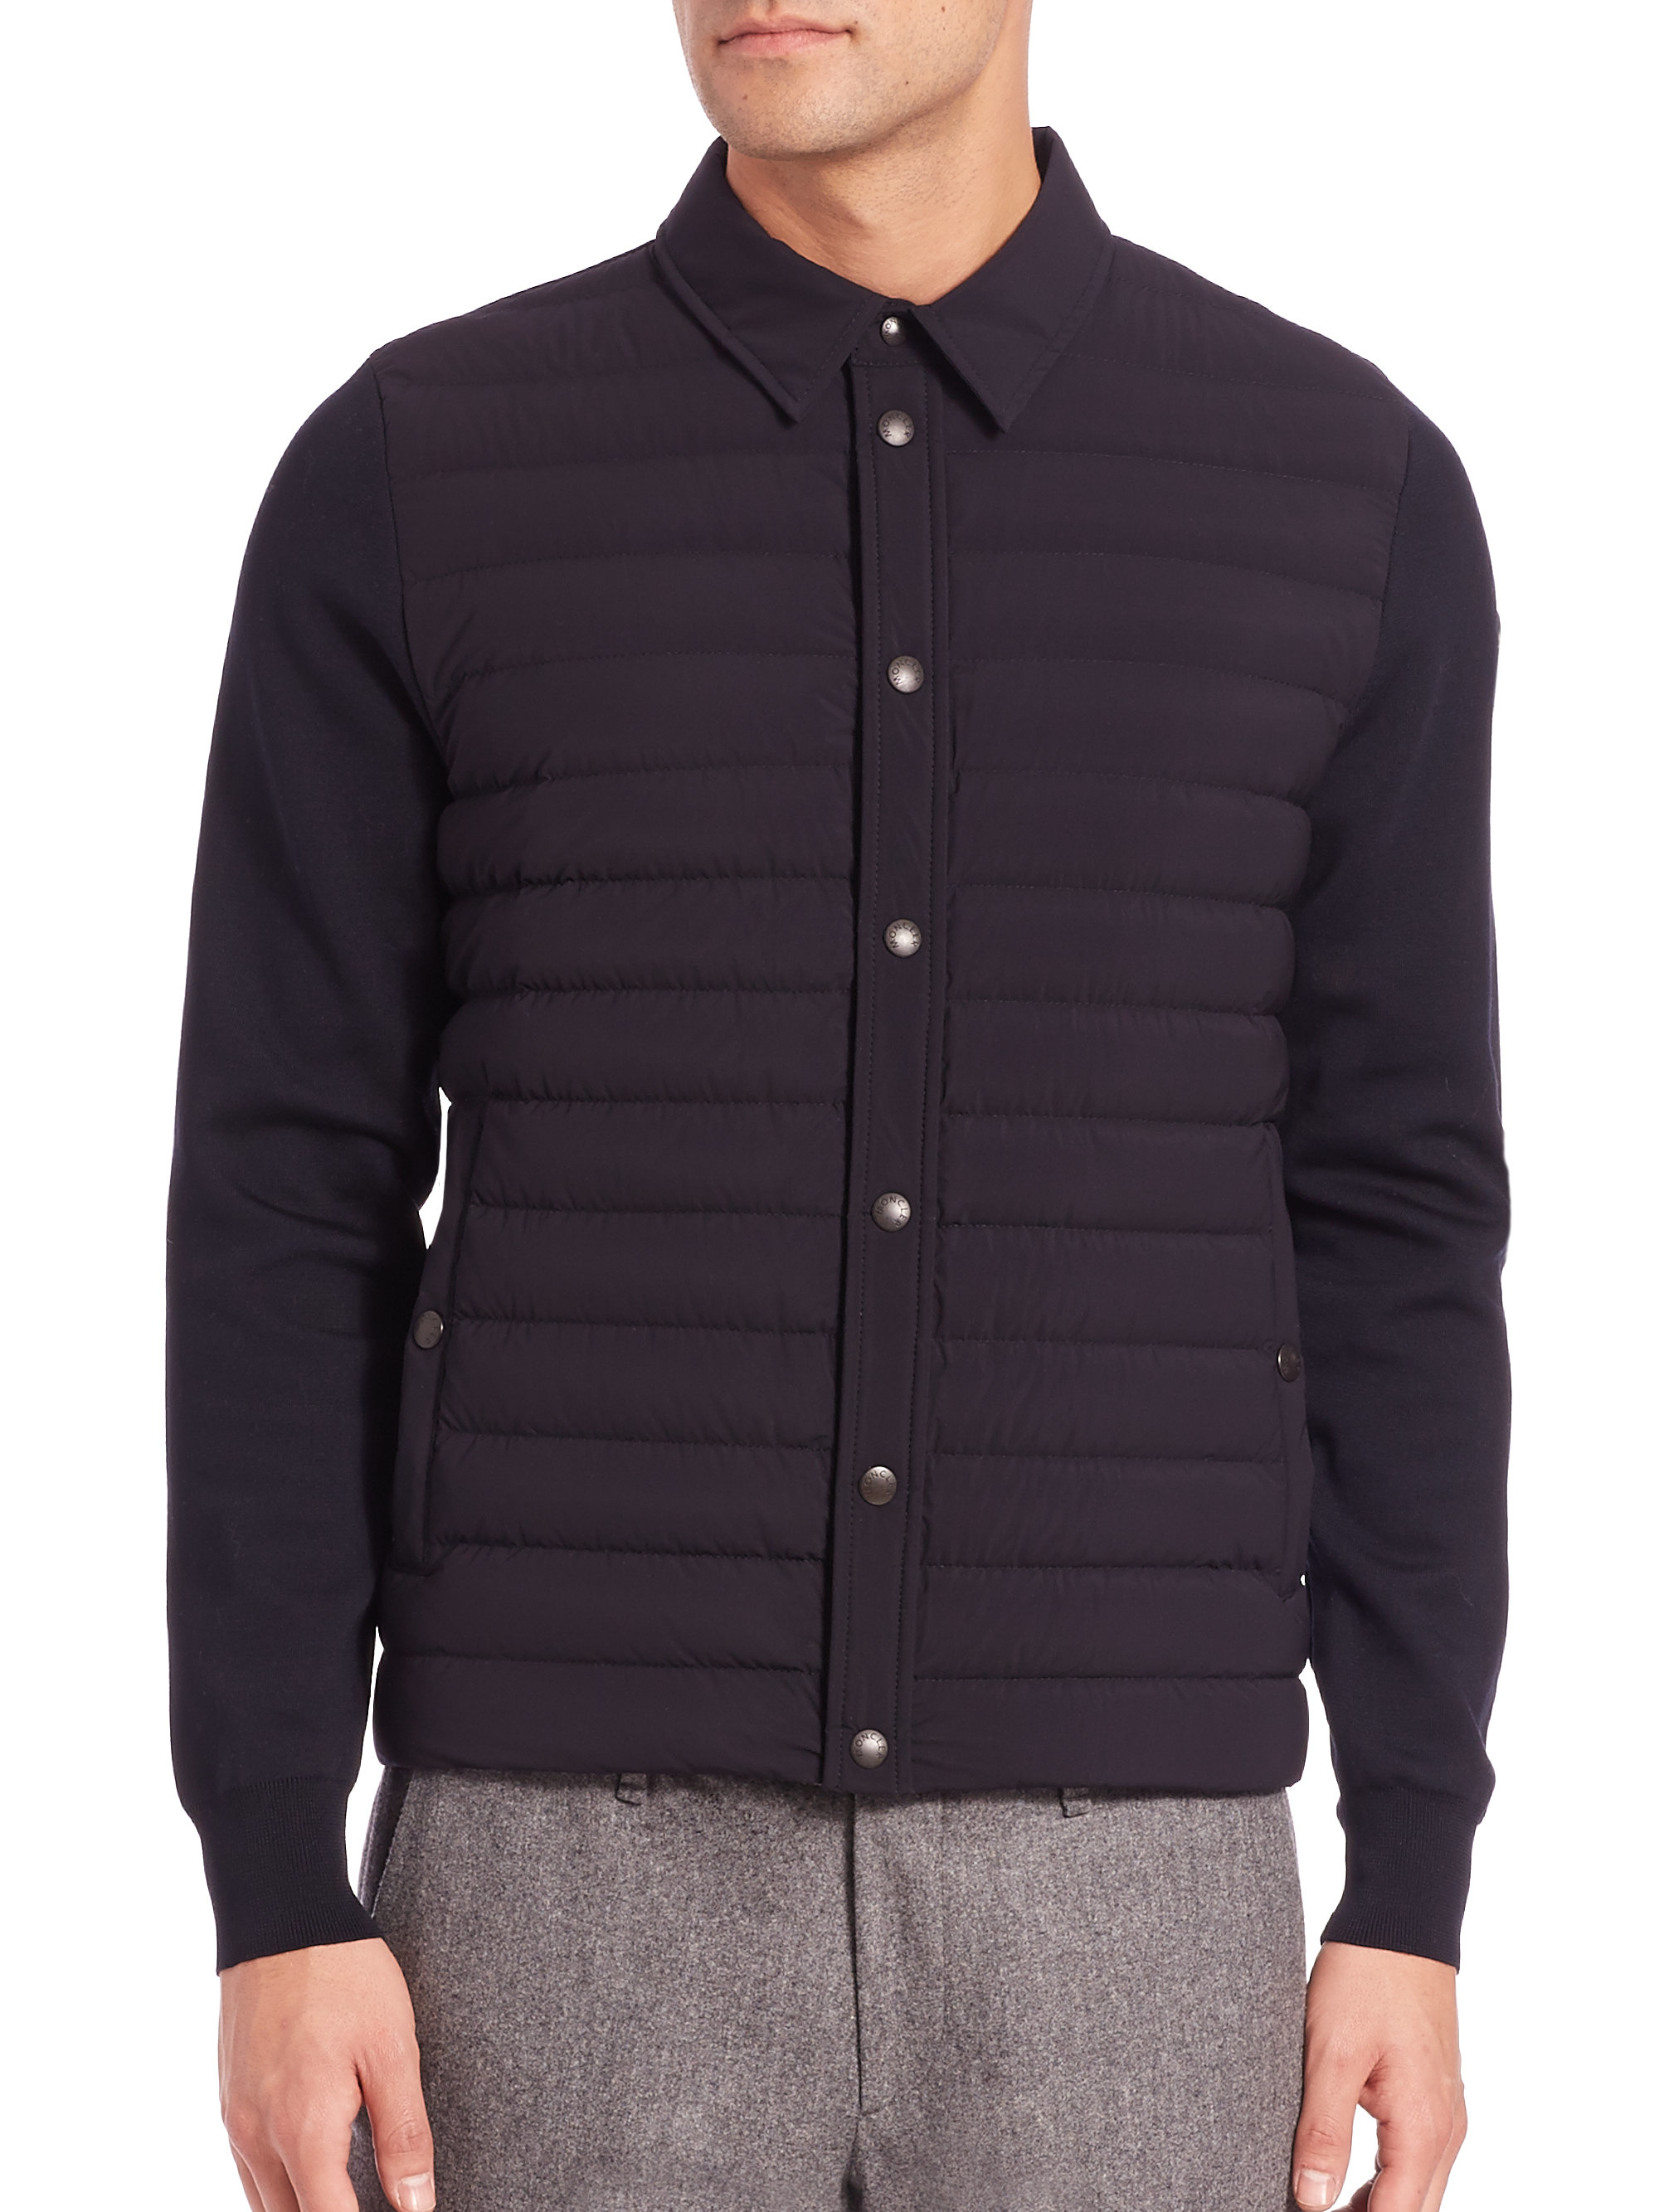 Moncler Knit Cardigan Sweater in Black for Men | Lyst